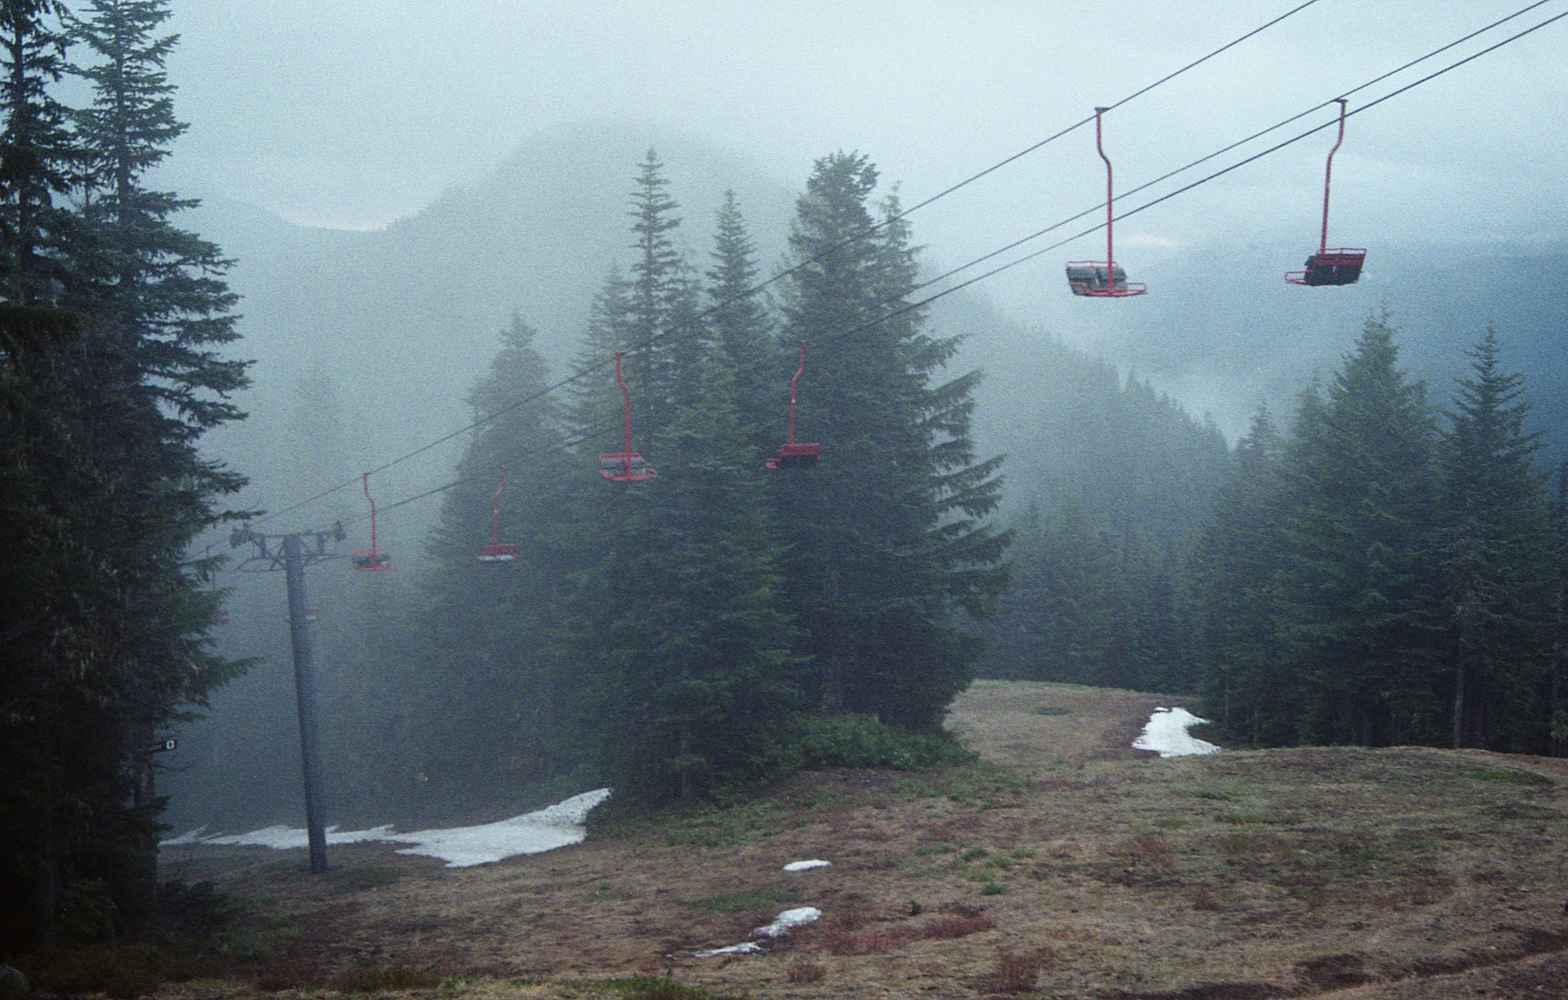 01-09 Ski Bowl Foggy summertime.jpg